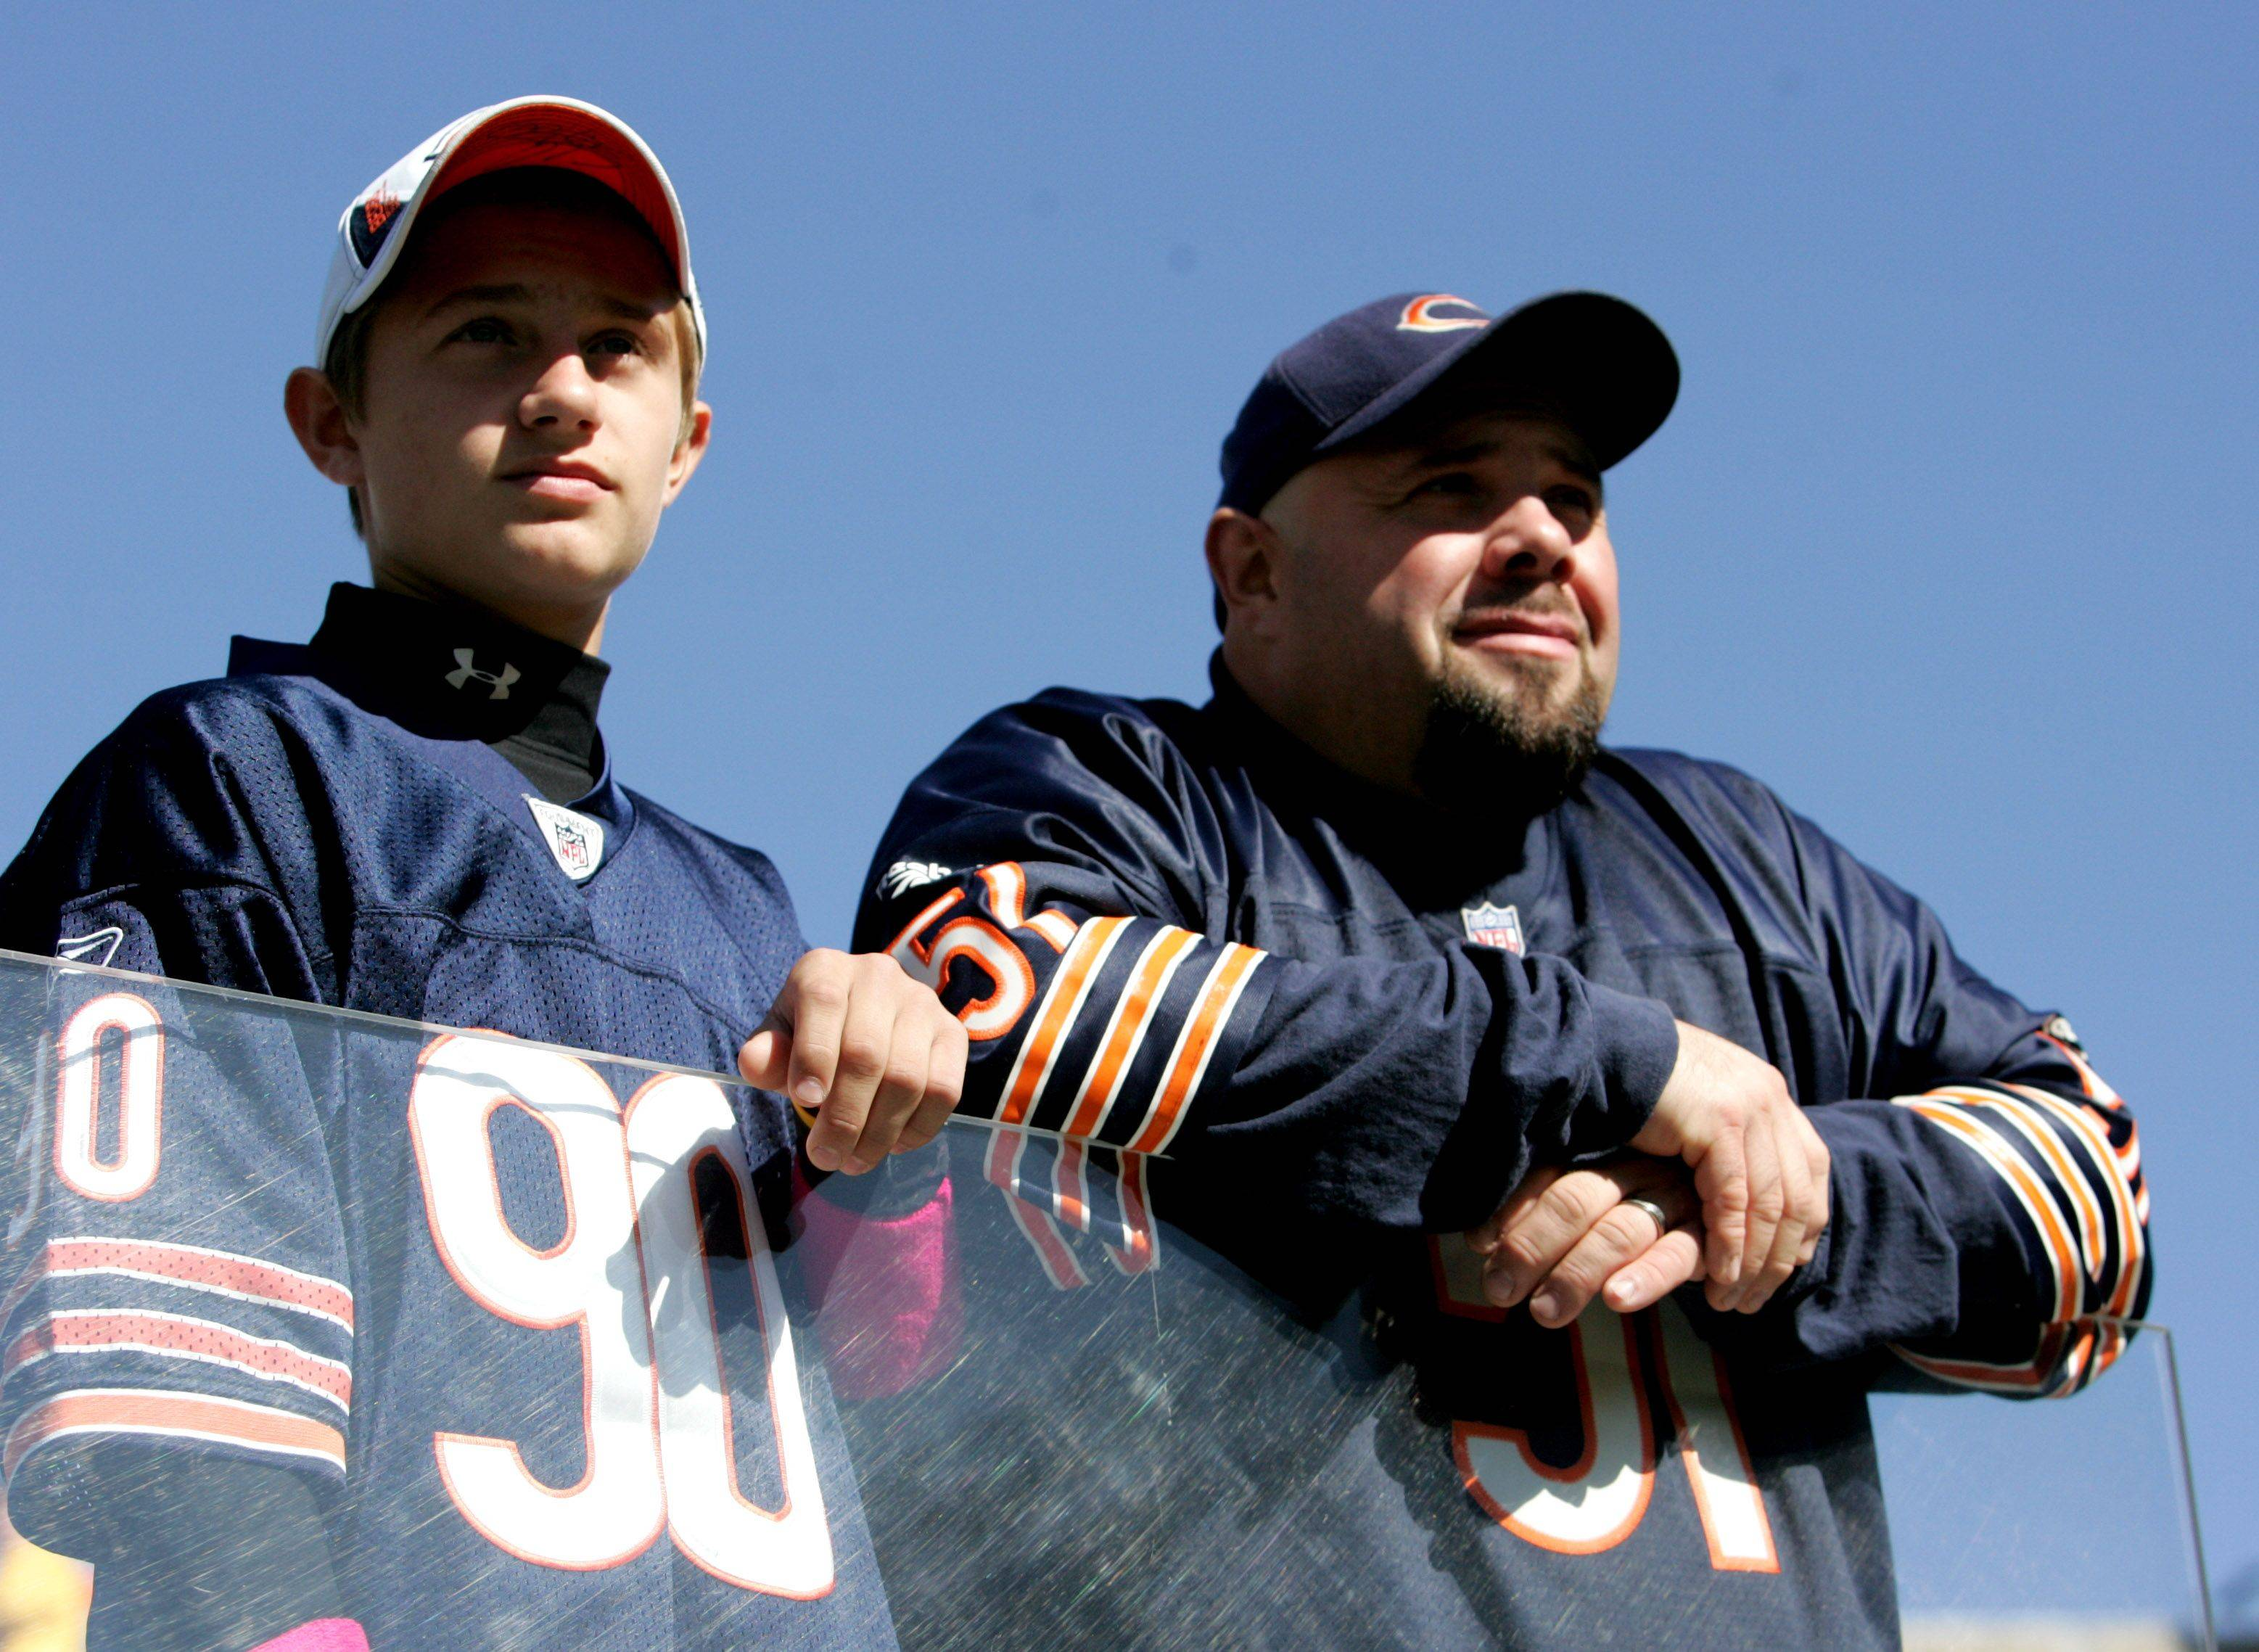 Justin Robles and his dad Jason Robles of Pingree Grove, wait for the start the Chicago Bears vs. Carolina Panthers game at Soldier Field on Sunday.